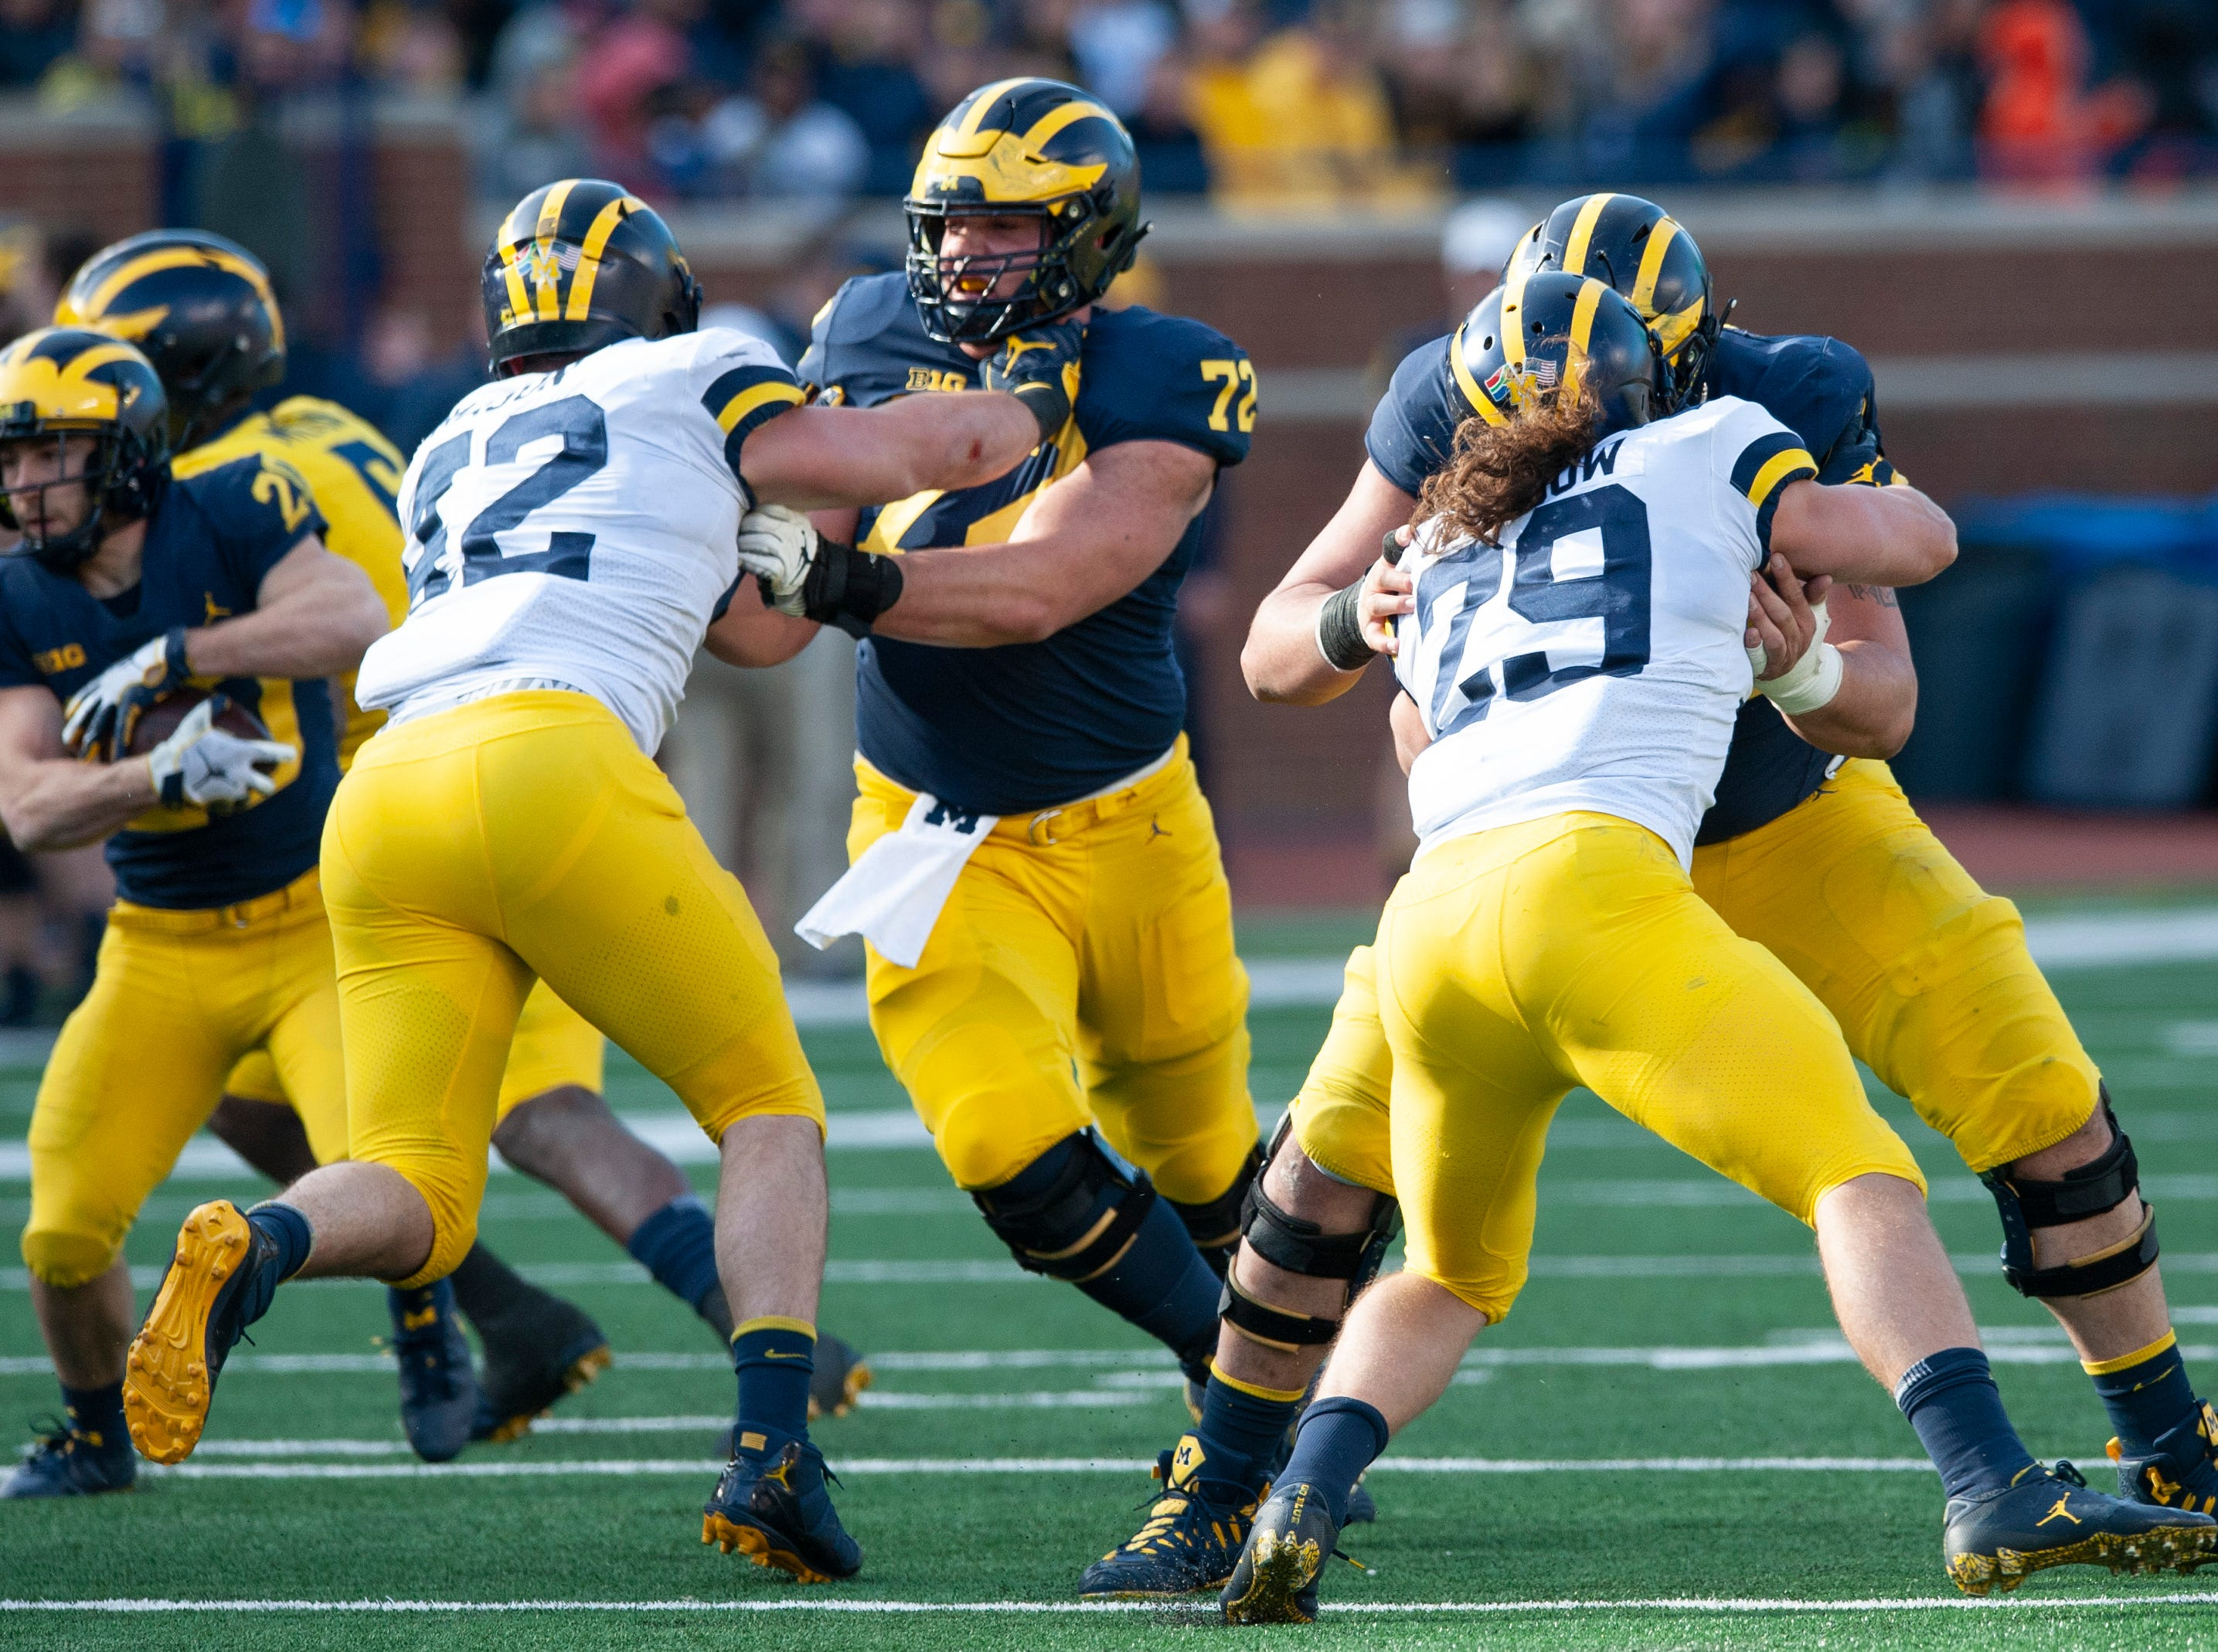 Michigan offensive lineman Stephen Spanellis holds off DL Ben Mason (42), while RB Nicholas Capatina runs the ball.